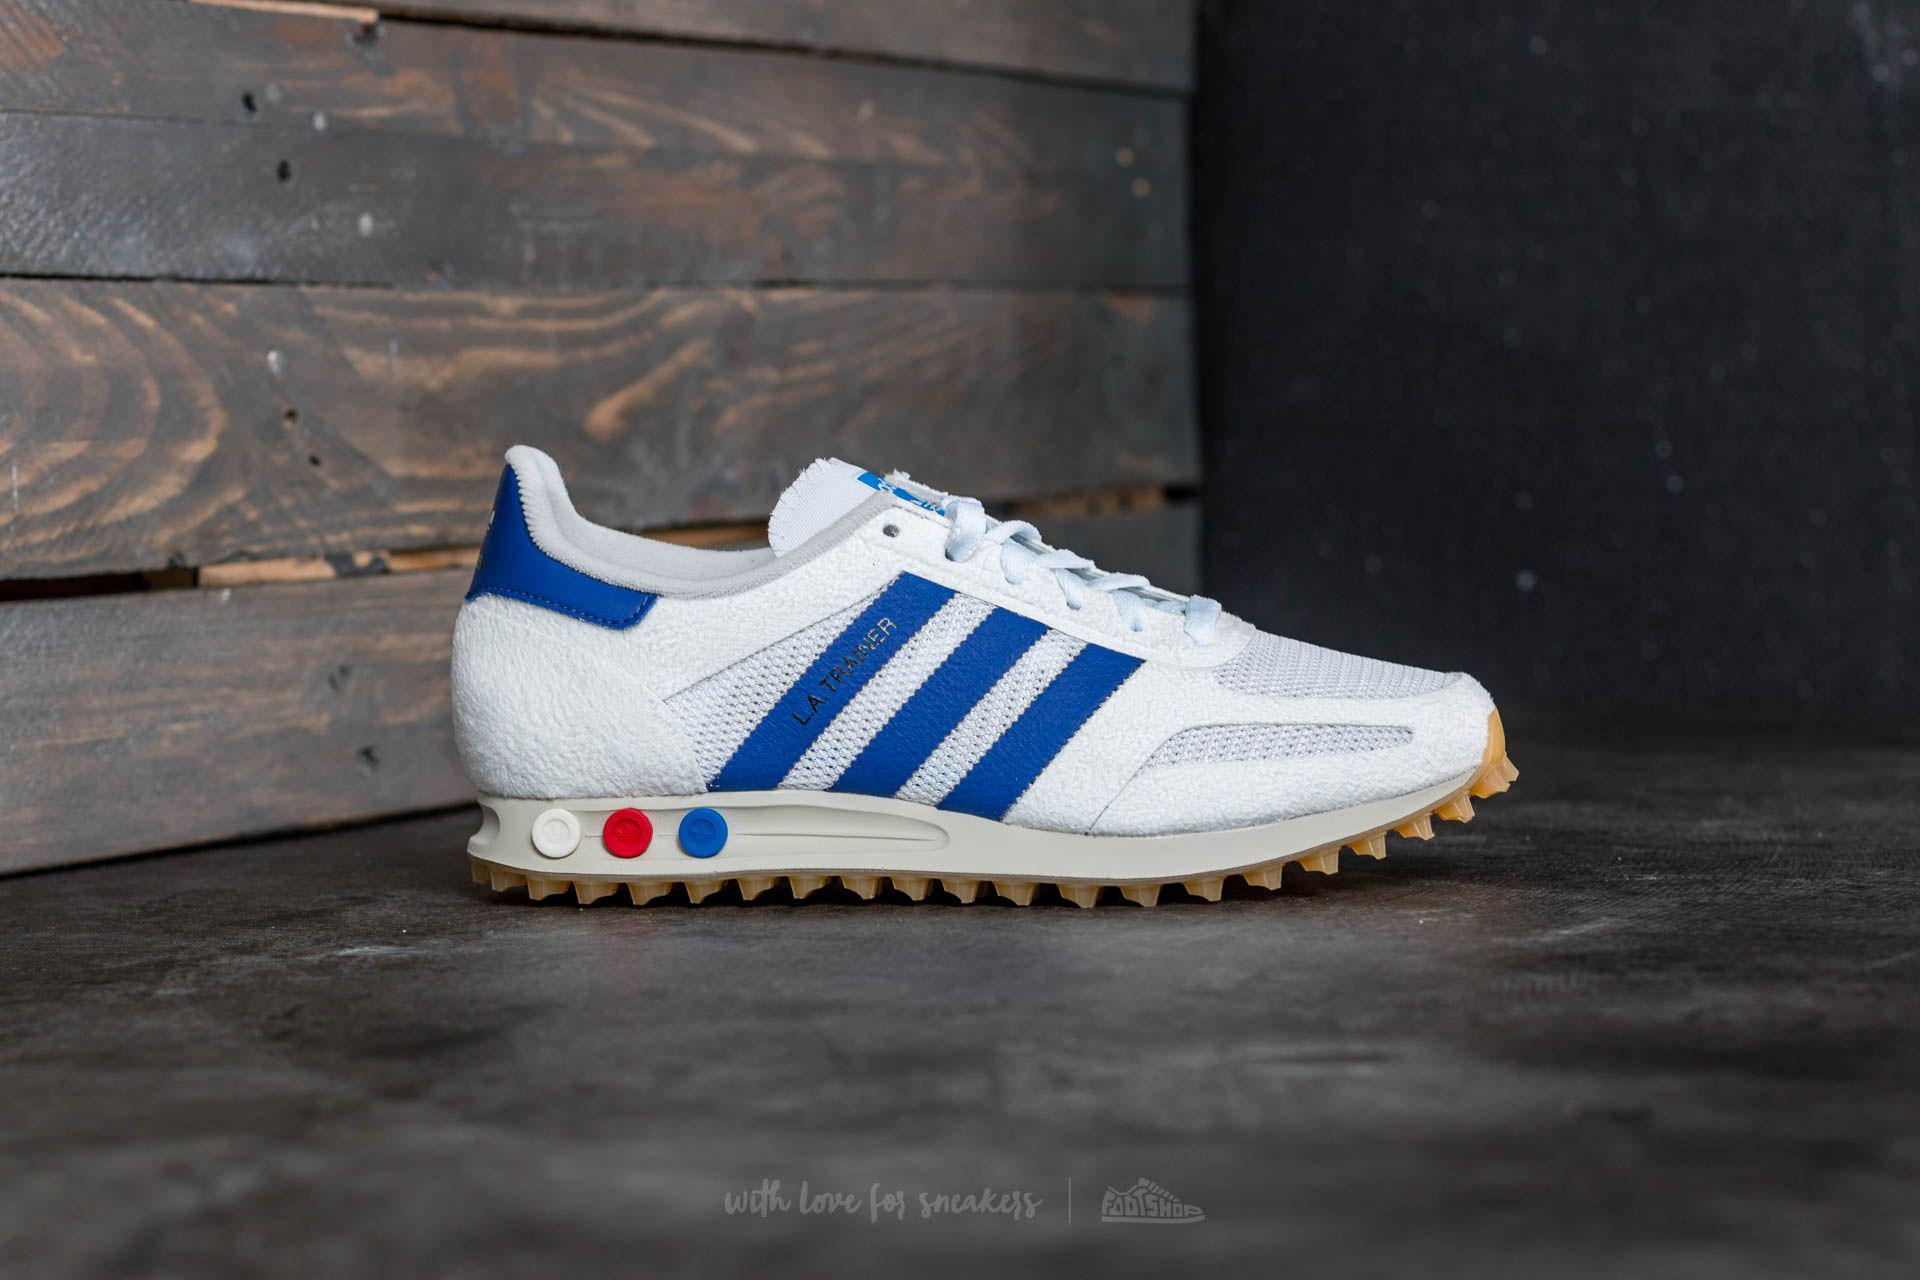 682c01299472 Lyst - adidas Originals Adidas La Trainer Og Vinted White  Mystery ...